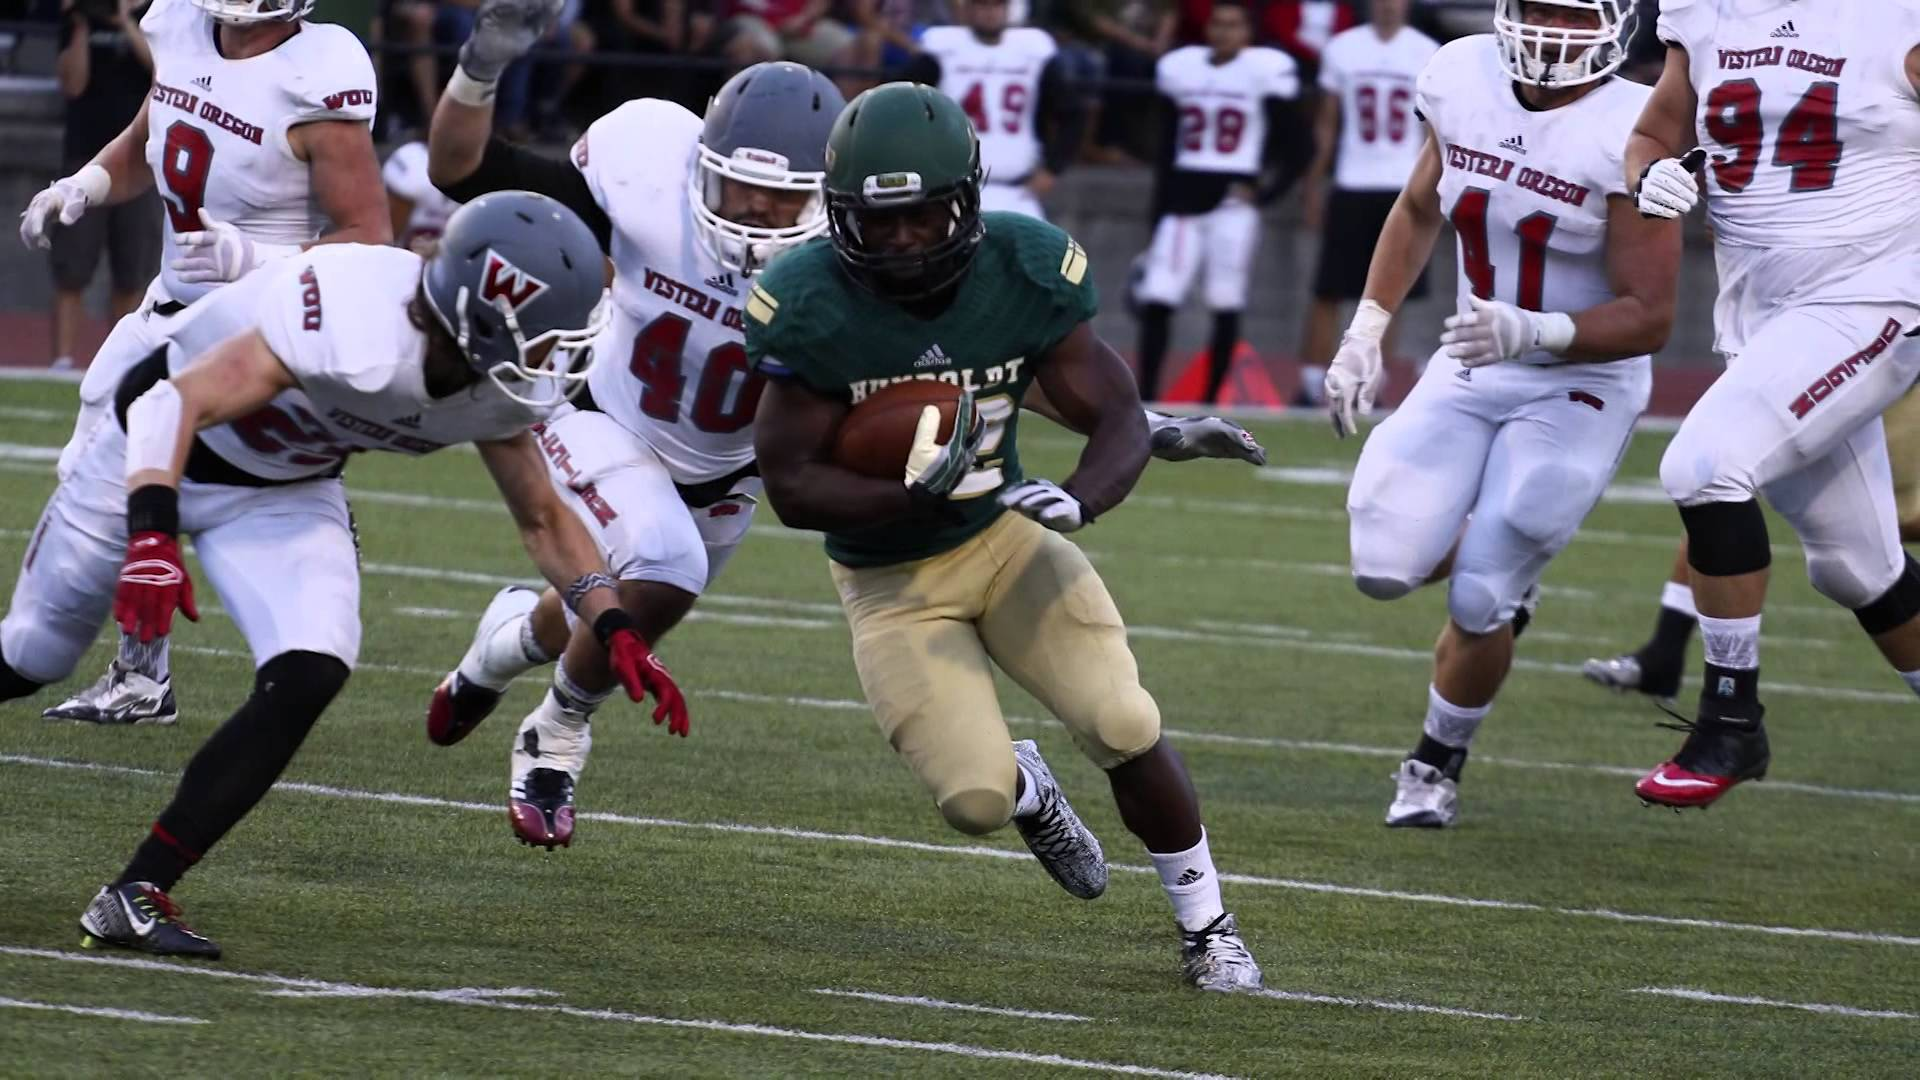 Better Know The Opponent, Week 1: Humboldt State